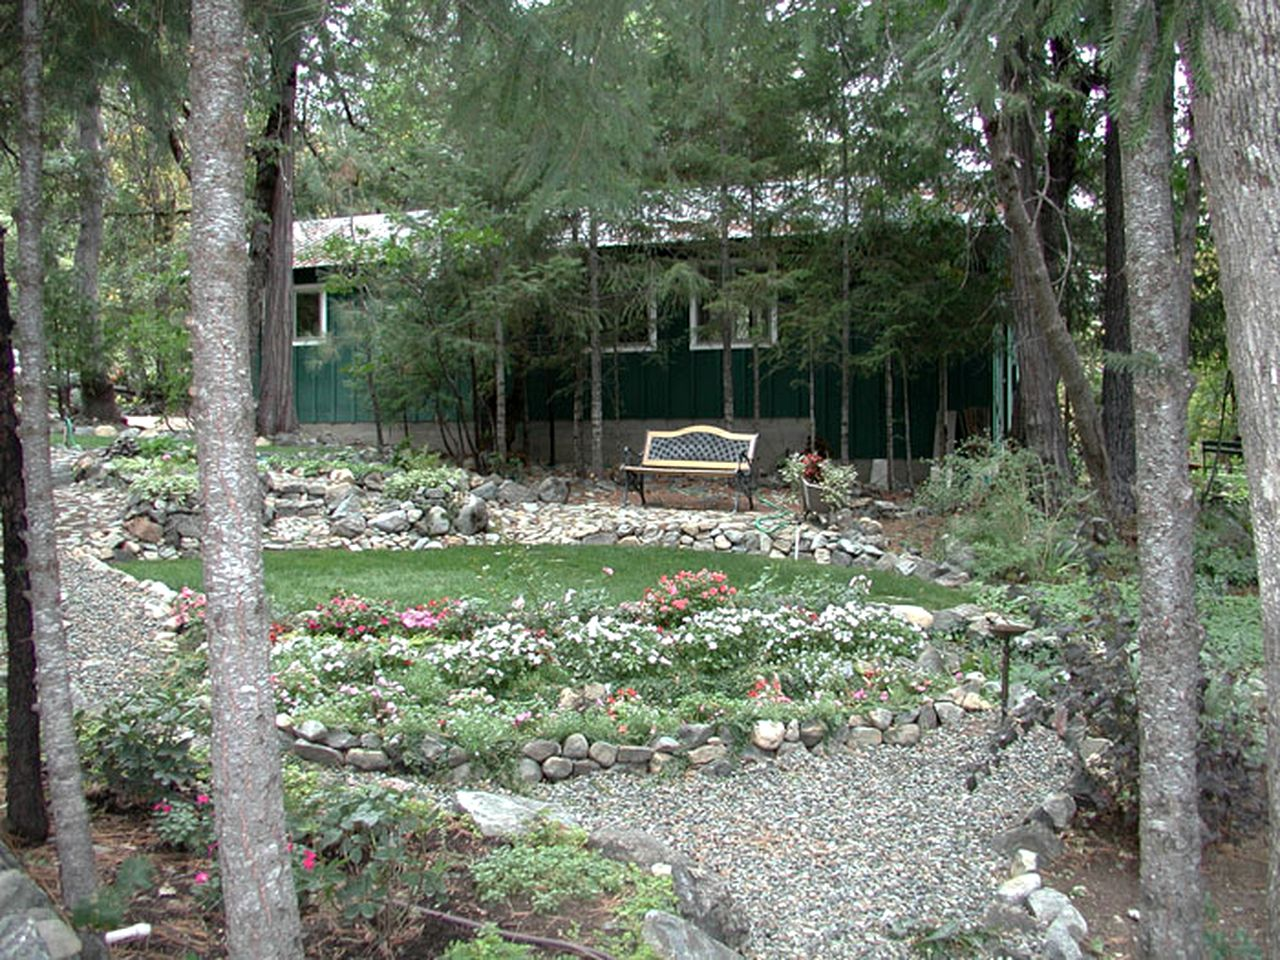 Cozy Cabin Rental Along Ripple Creek (Trinity Center, California, United States)